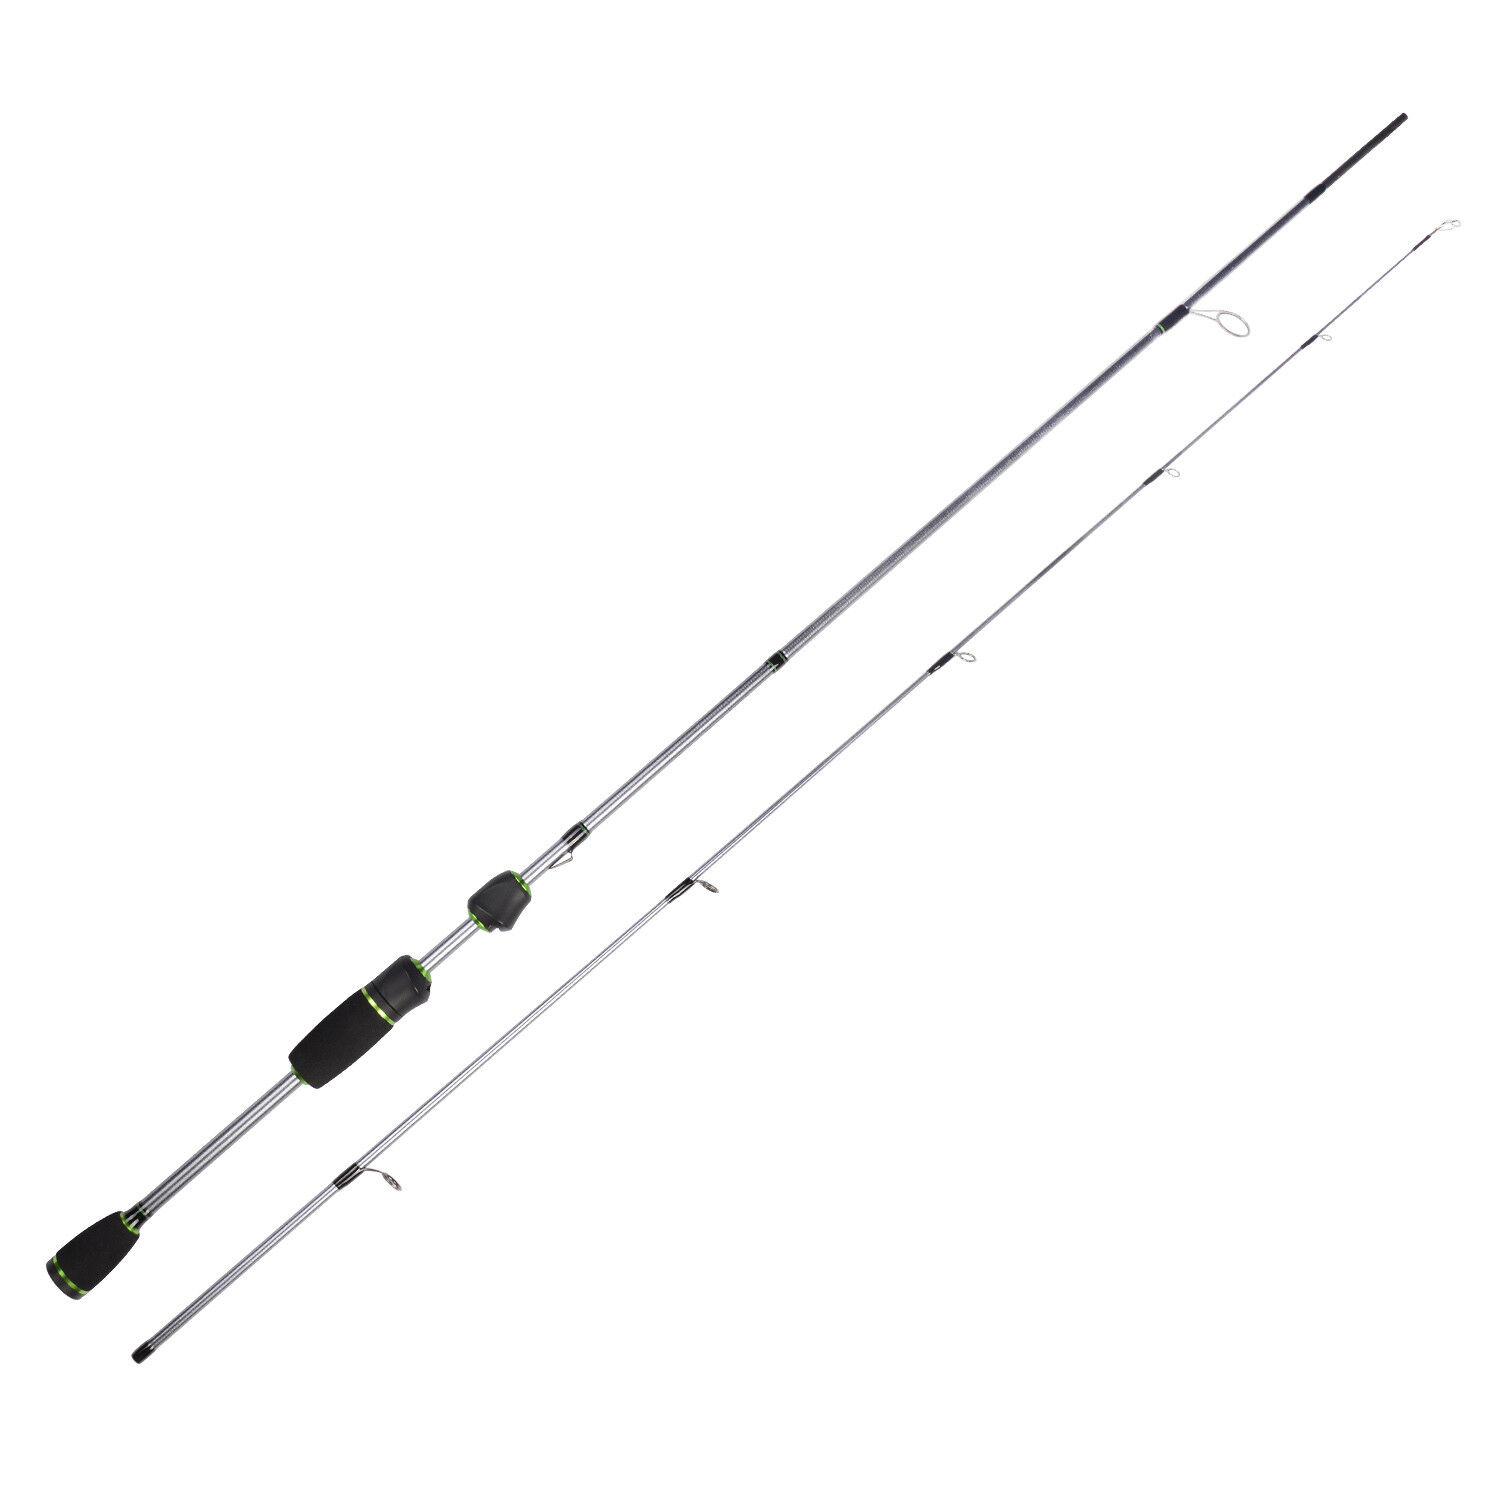 KastKing Calamus Spinning Fishing Rod 2 pcs Fishing Rod - 7' - M